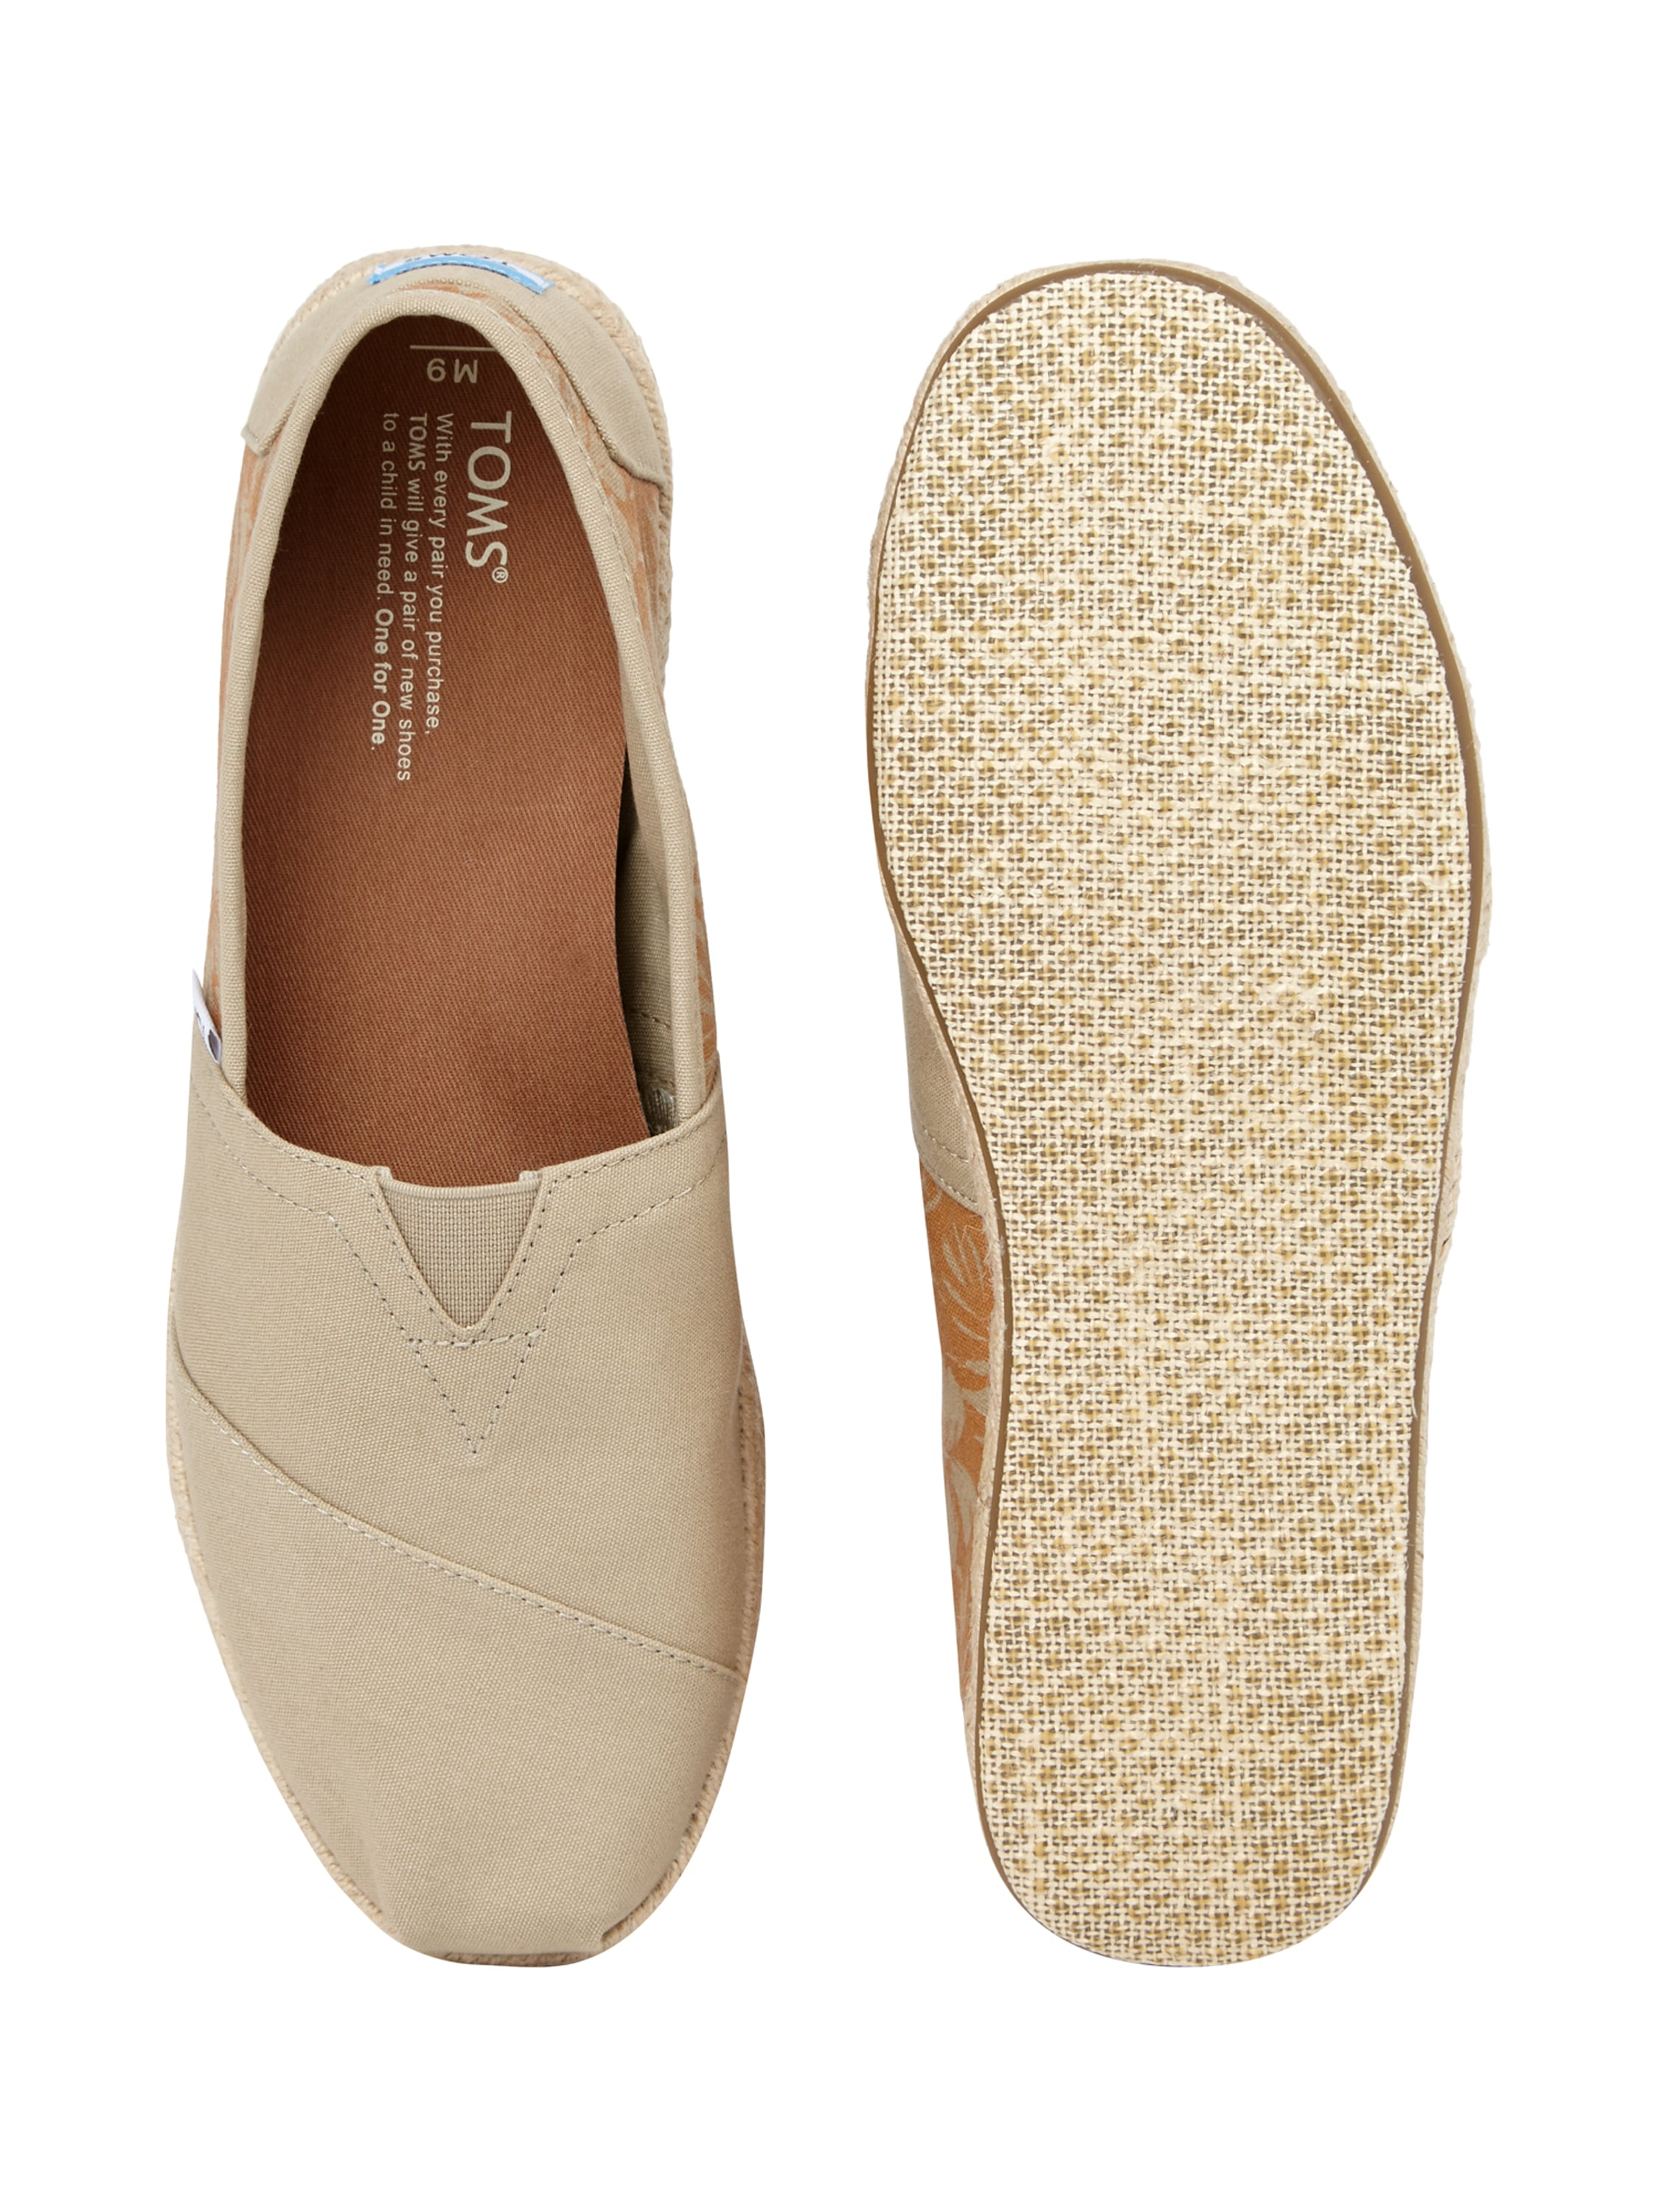 toms espadrilles mit hawaii muster in wei online entdecken 9446445 p c online. Black Bedroom Furniture Sets. Home Design Ideas